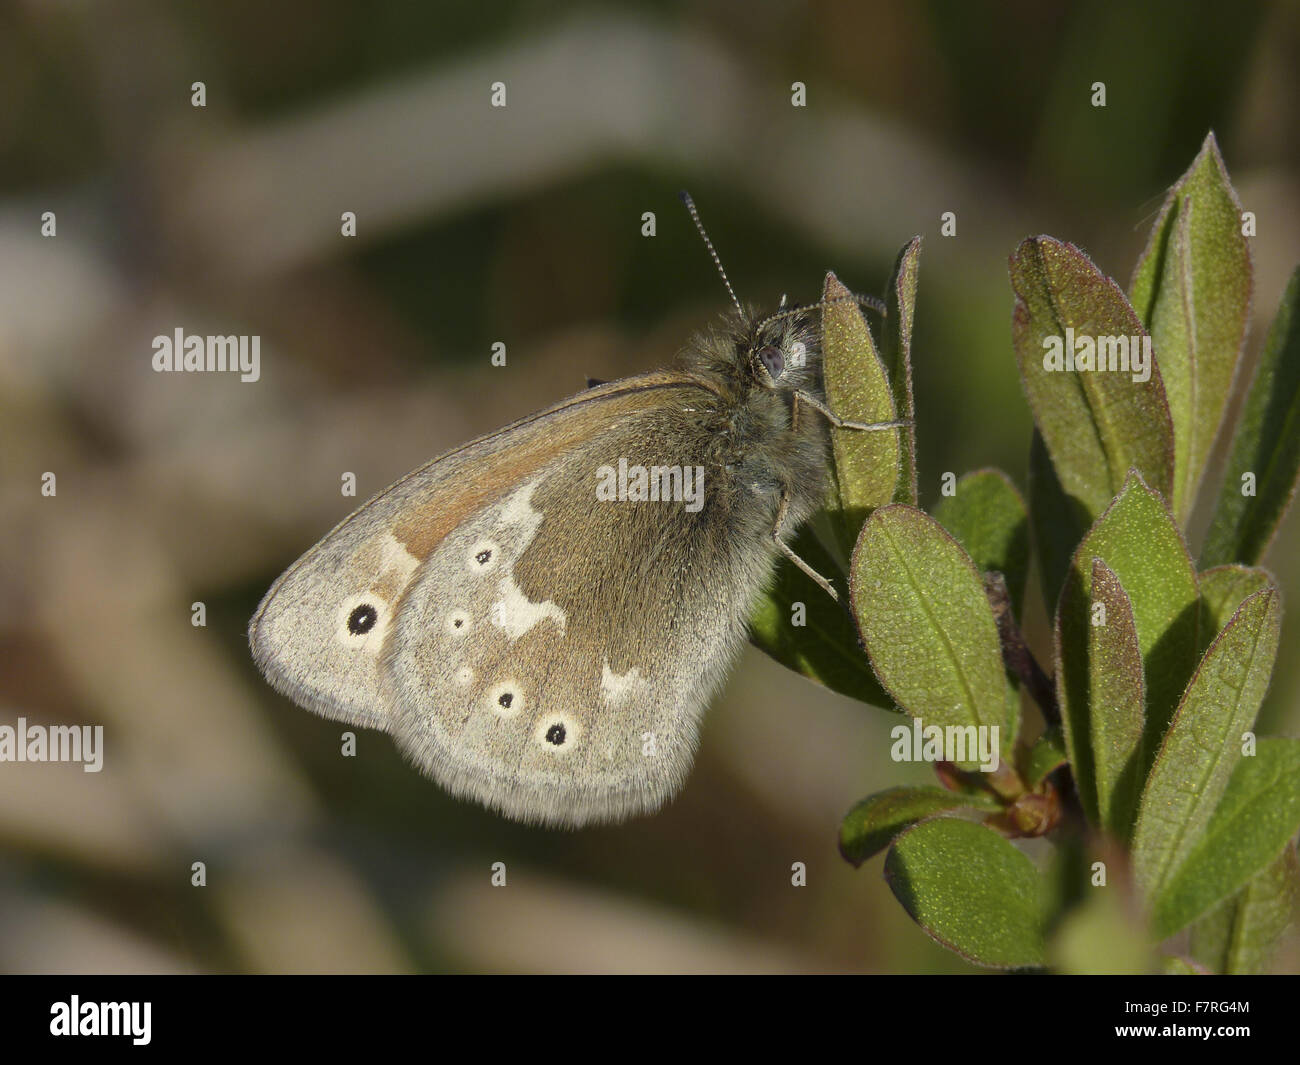 Large Heath butterfly, ssp polydama - Stock Image